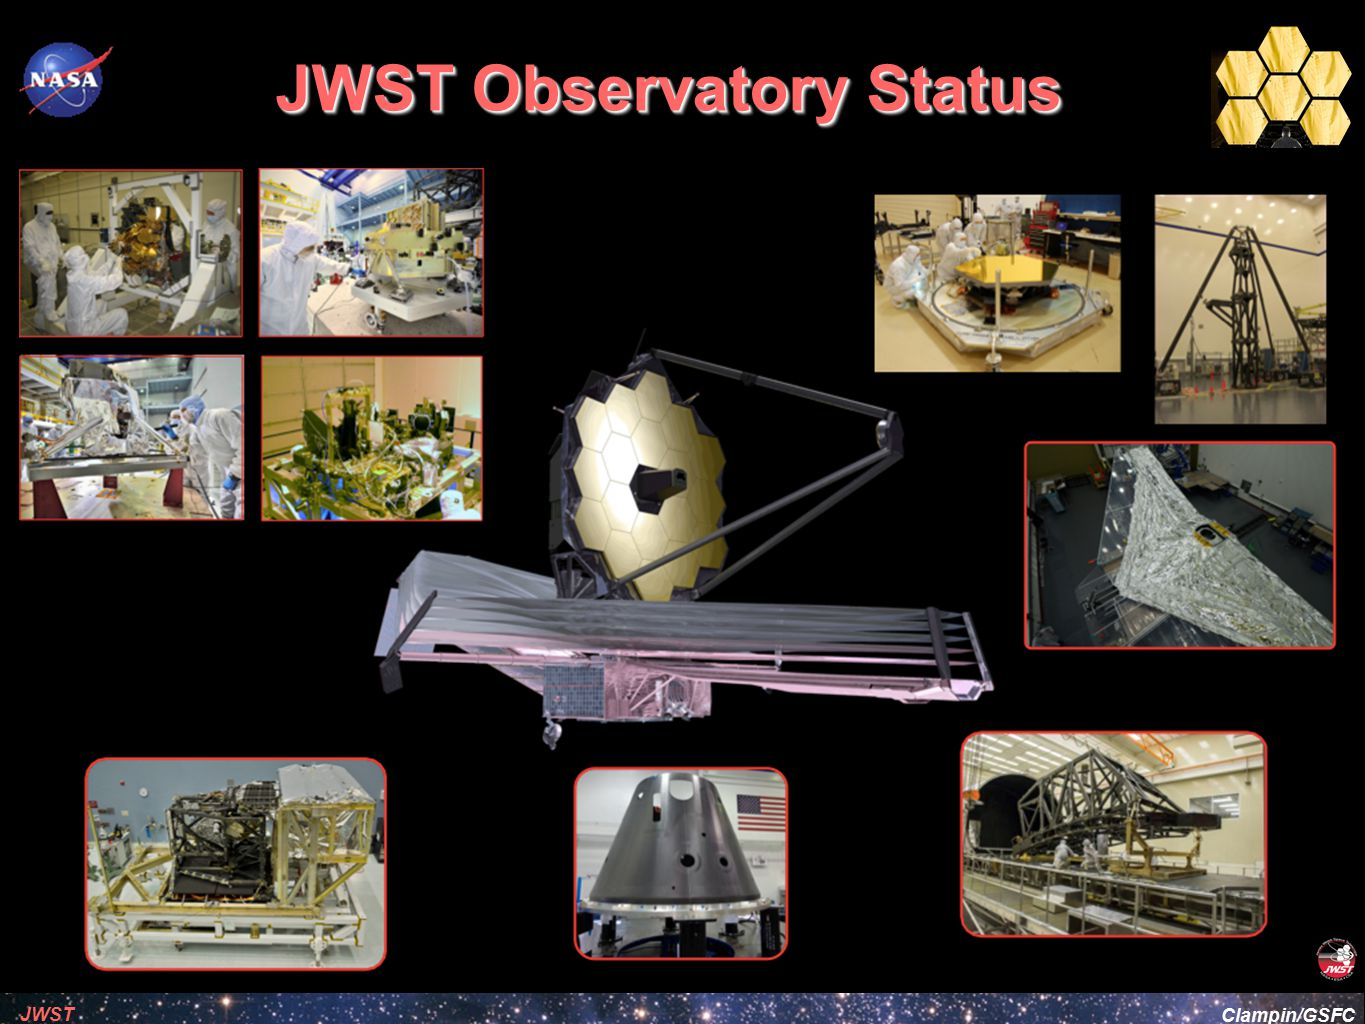 Clampin/GSFC JWST Calibration Options Is it possible to calibrate the structure of detector pixels on-orbit to facilitate jitter decorrelation for science instruments ➡ Added option for Fine Steering Mirror (FSM) to step a star around a detector pixel under fine guidance ➡ Known as FSM-offsets ➡ Small-angle maneuvers use reaction wheels and are limited in precision ➡ FSM offsets have precision of few mas and allow an image to be stepped around a single pixel to map out pixel response functions ➡ Efficient small angle dithering ➡ Especially useful for MIRI where ground-calibration is not feasible